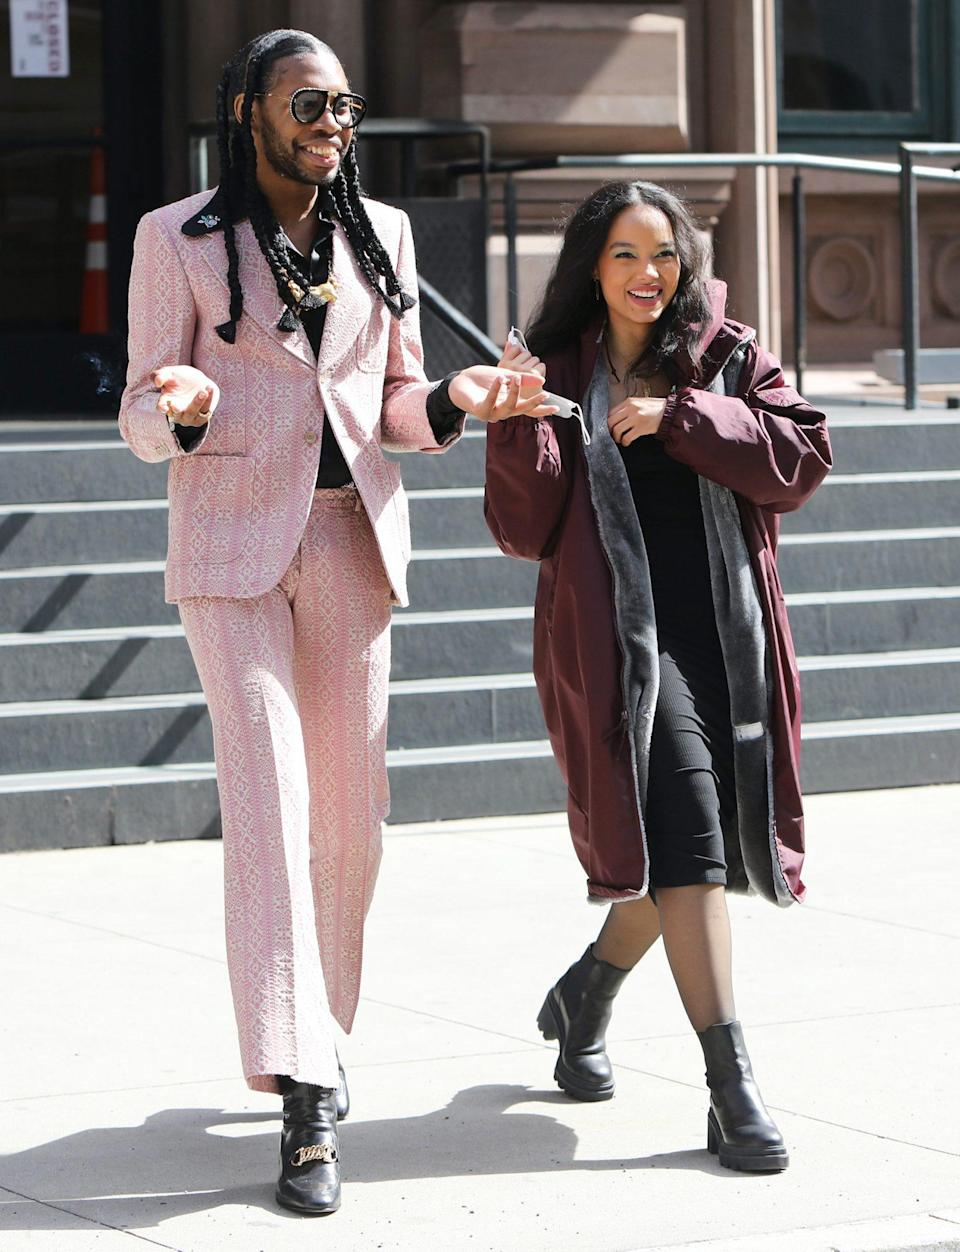 <p>Jeremy O. Harris and Whitney Peak are spotted on the set of <em>Gossip Girl</em> on Tuesday in N.Y.C.</p>